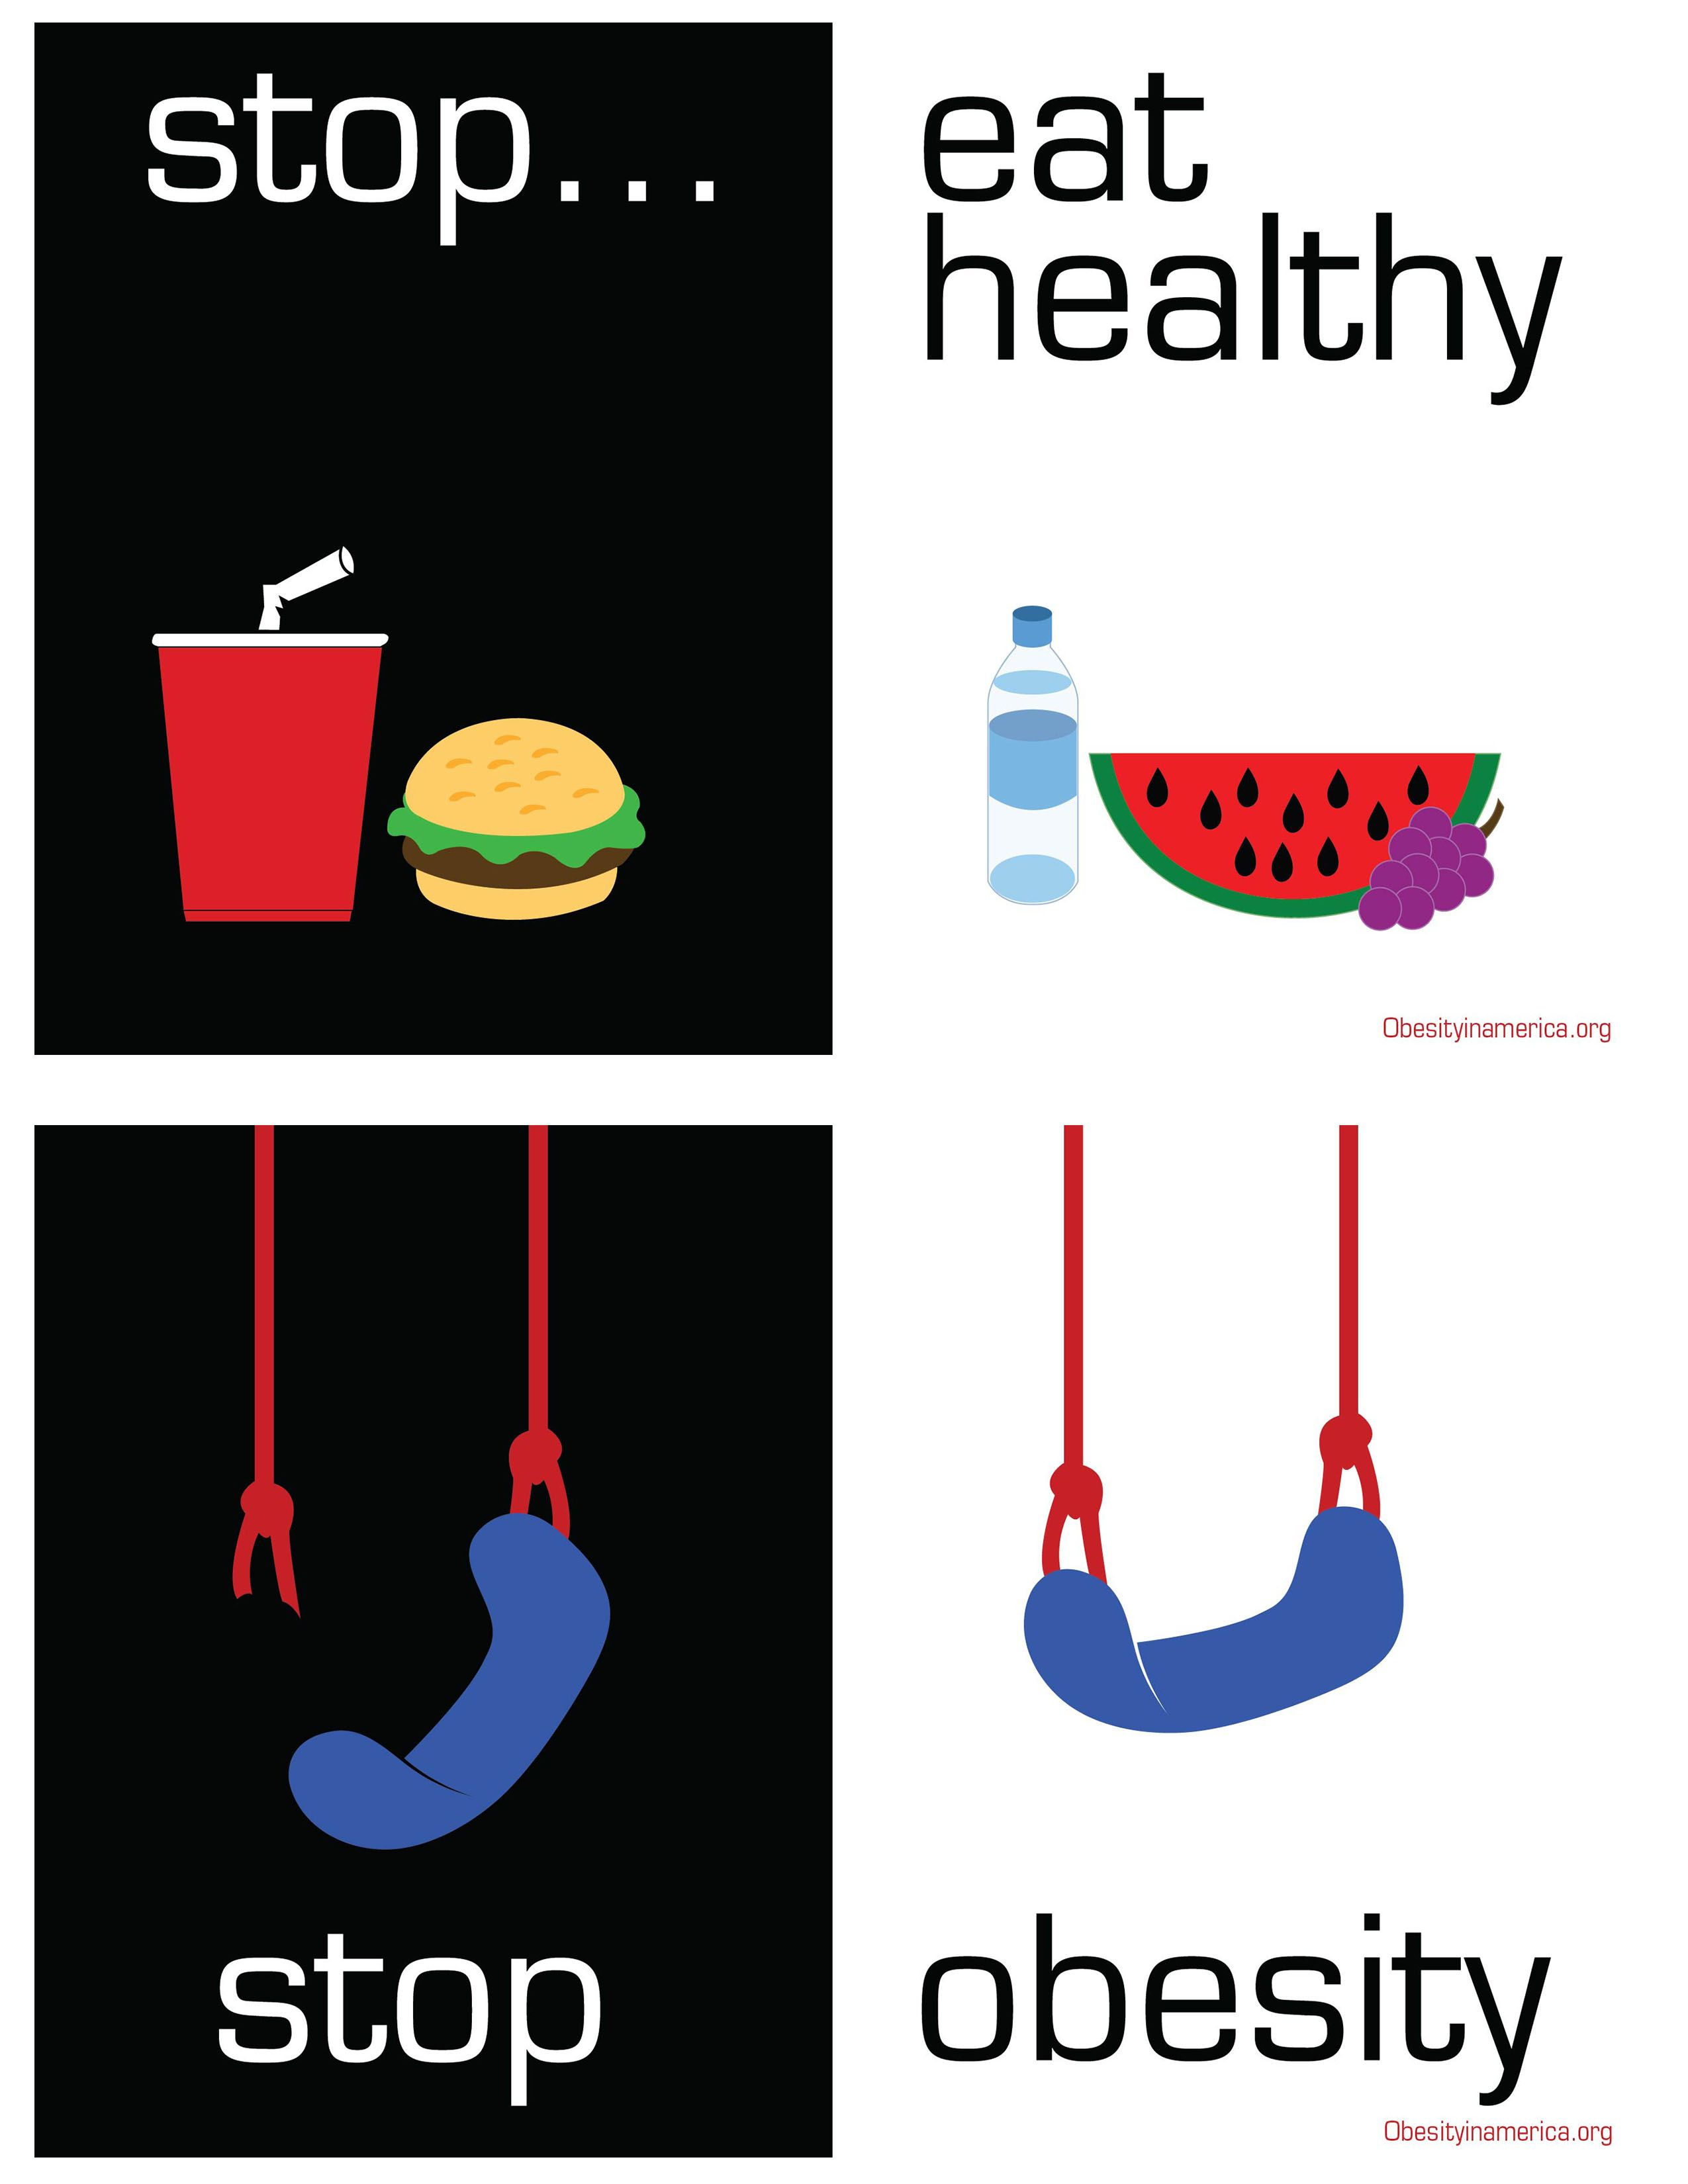 Campaign to help prevent child obesity.